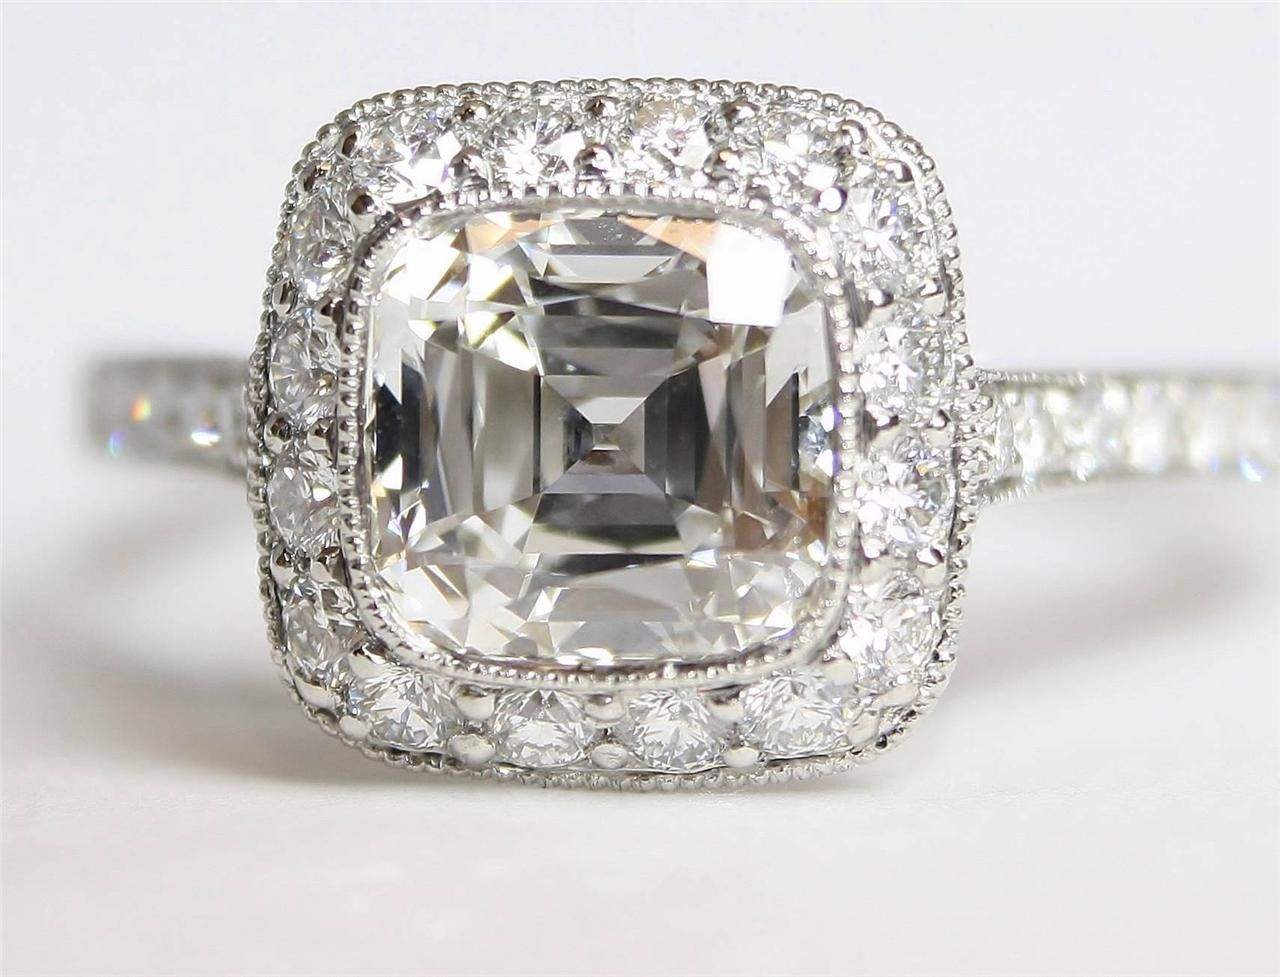 New orleans diamond jewelry exchange diamond brokers for How to sell your wedding ring